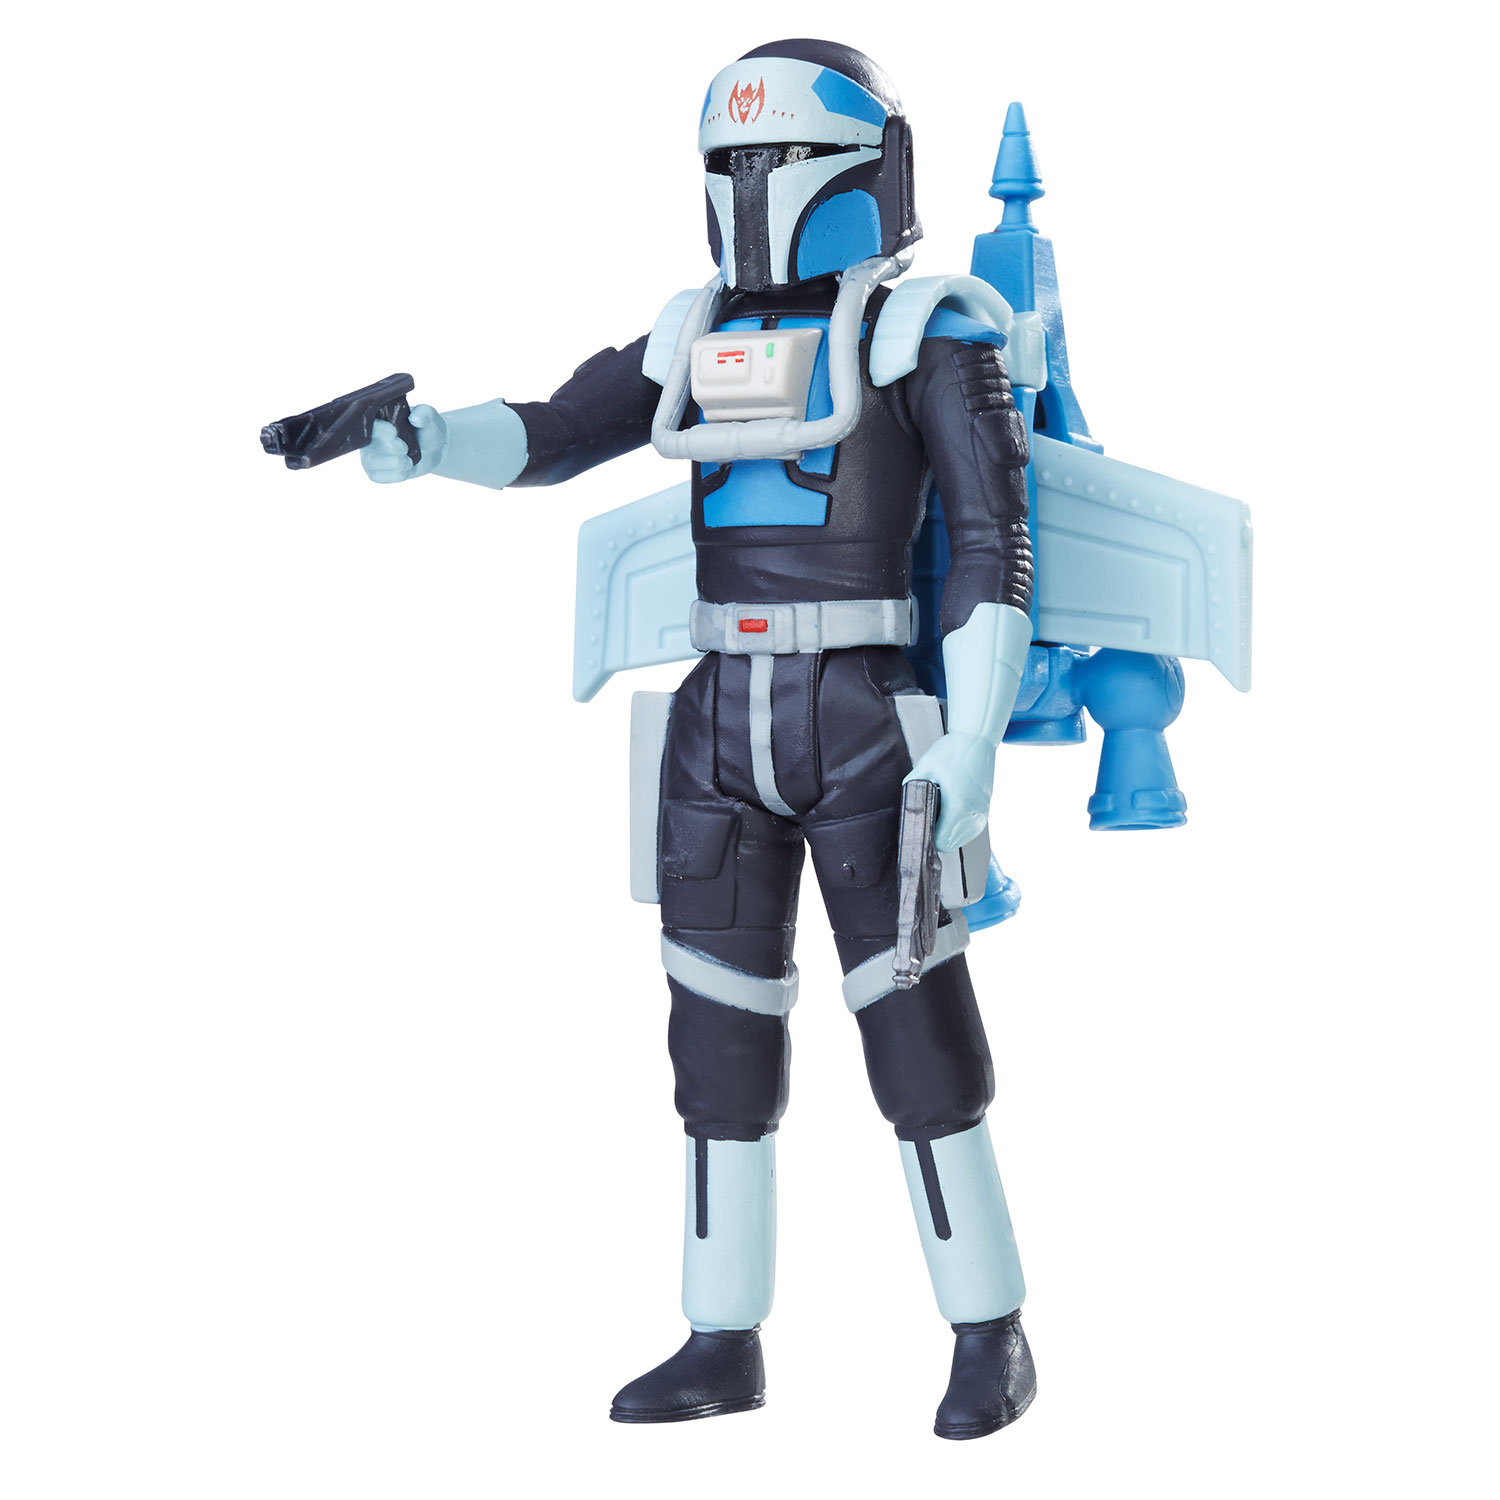 Star Wars Rogue One Wave 4 Hasbro